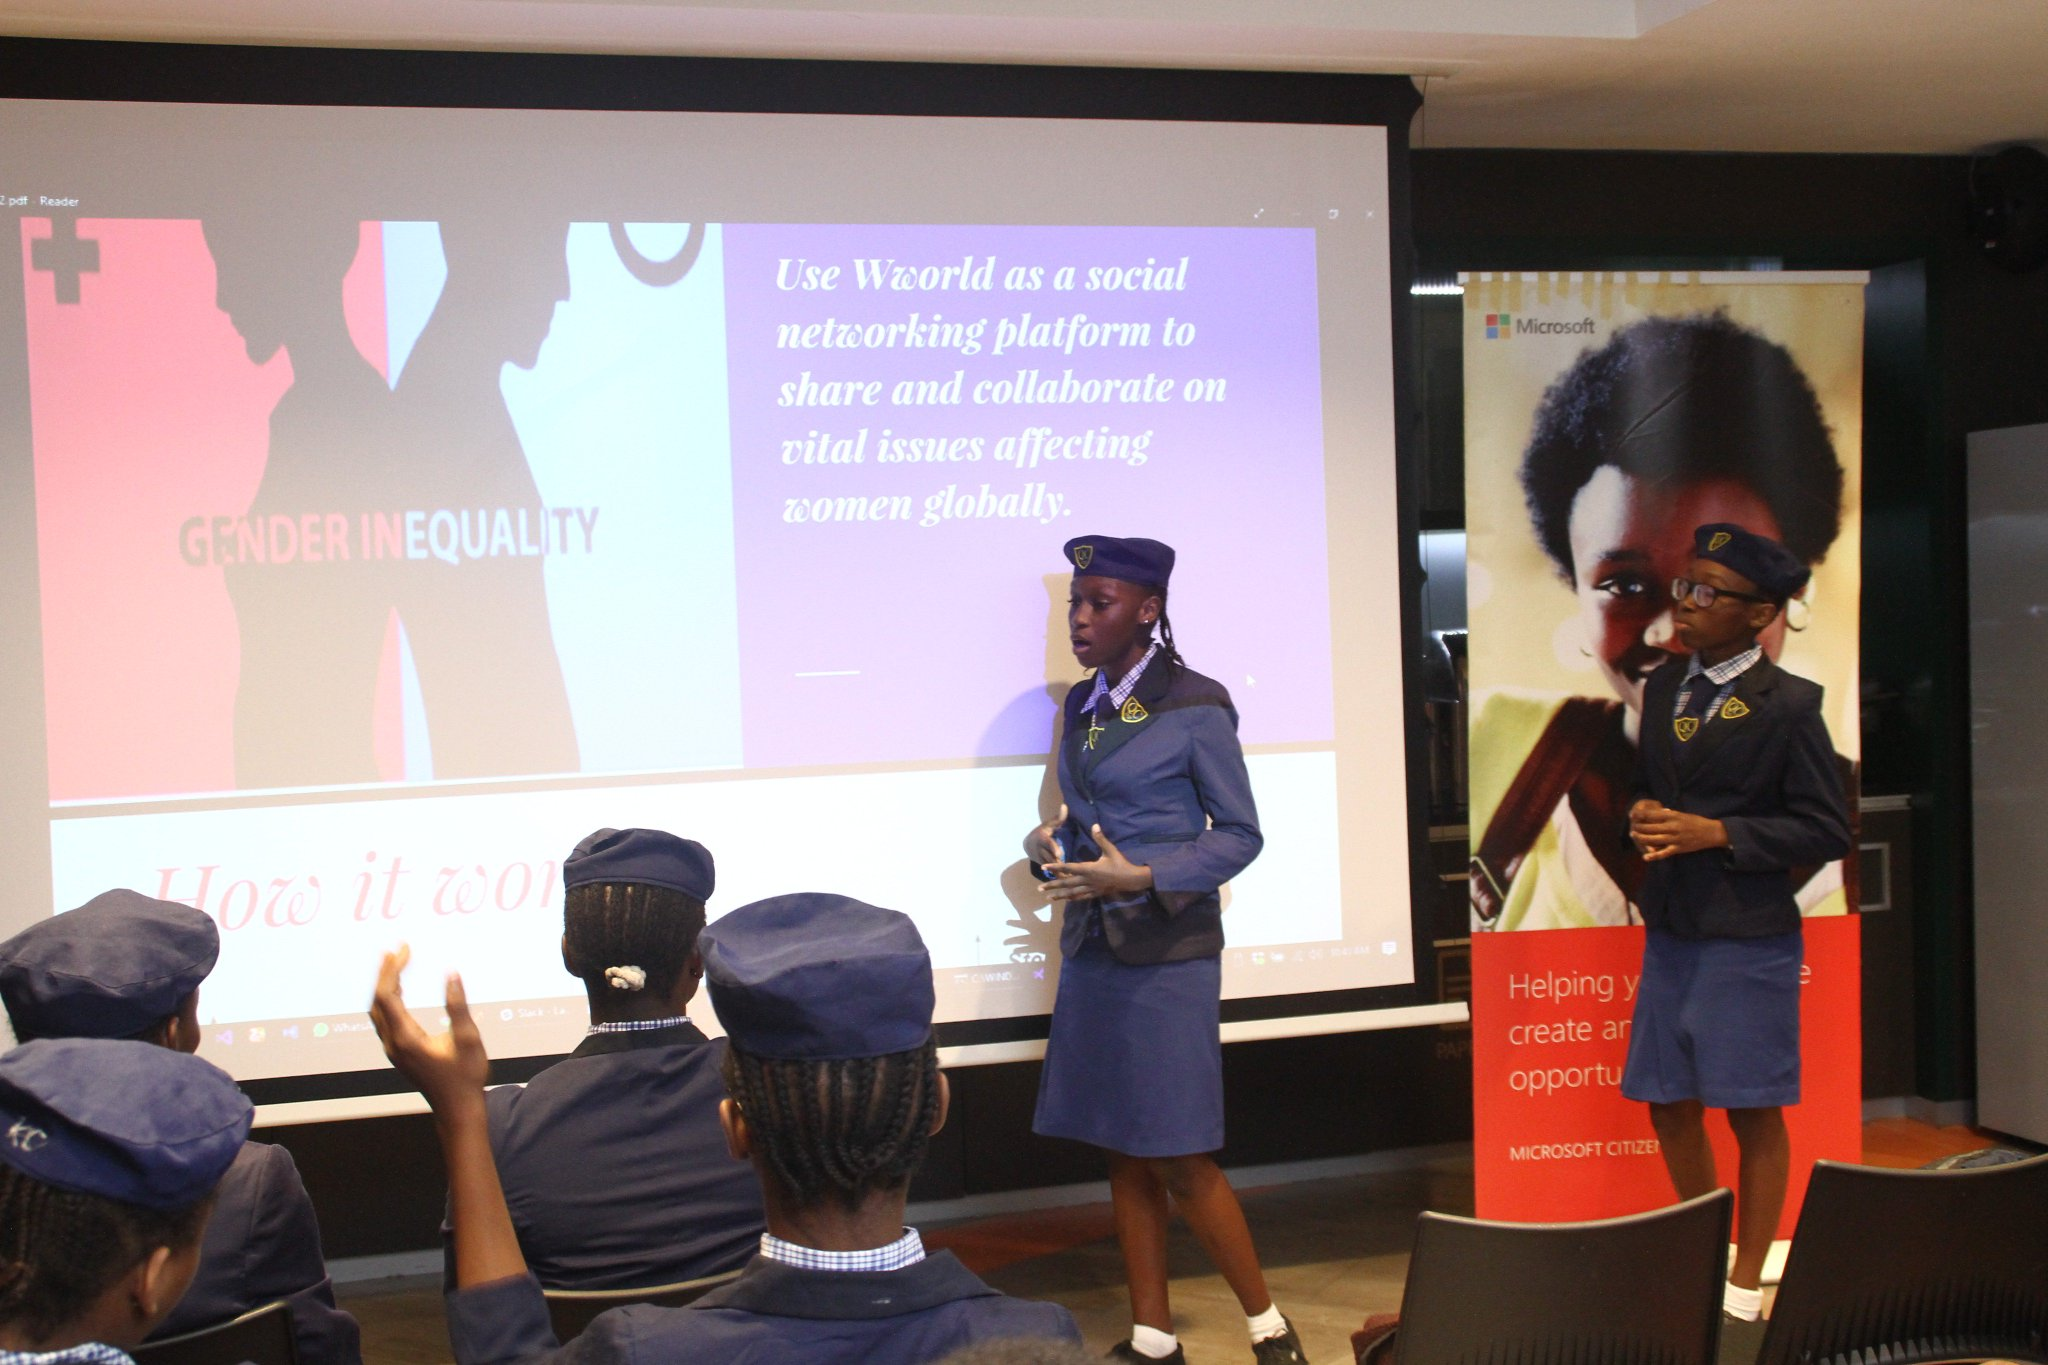 Beautiful presentation by #TeamSpeed on #Wworld app @technovation celebration event @MicrosoftNG https://t.co/XfuoGDQN0h